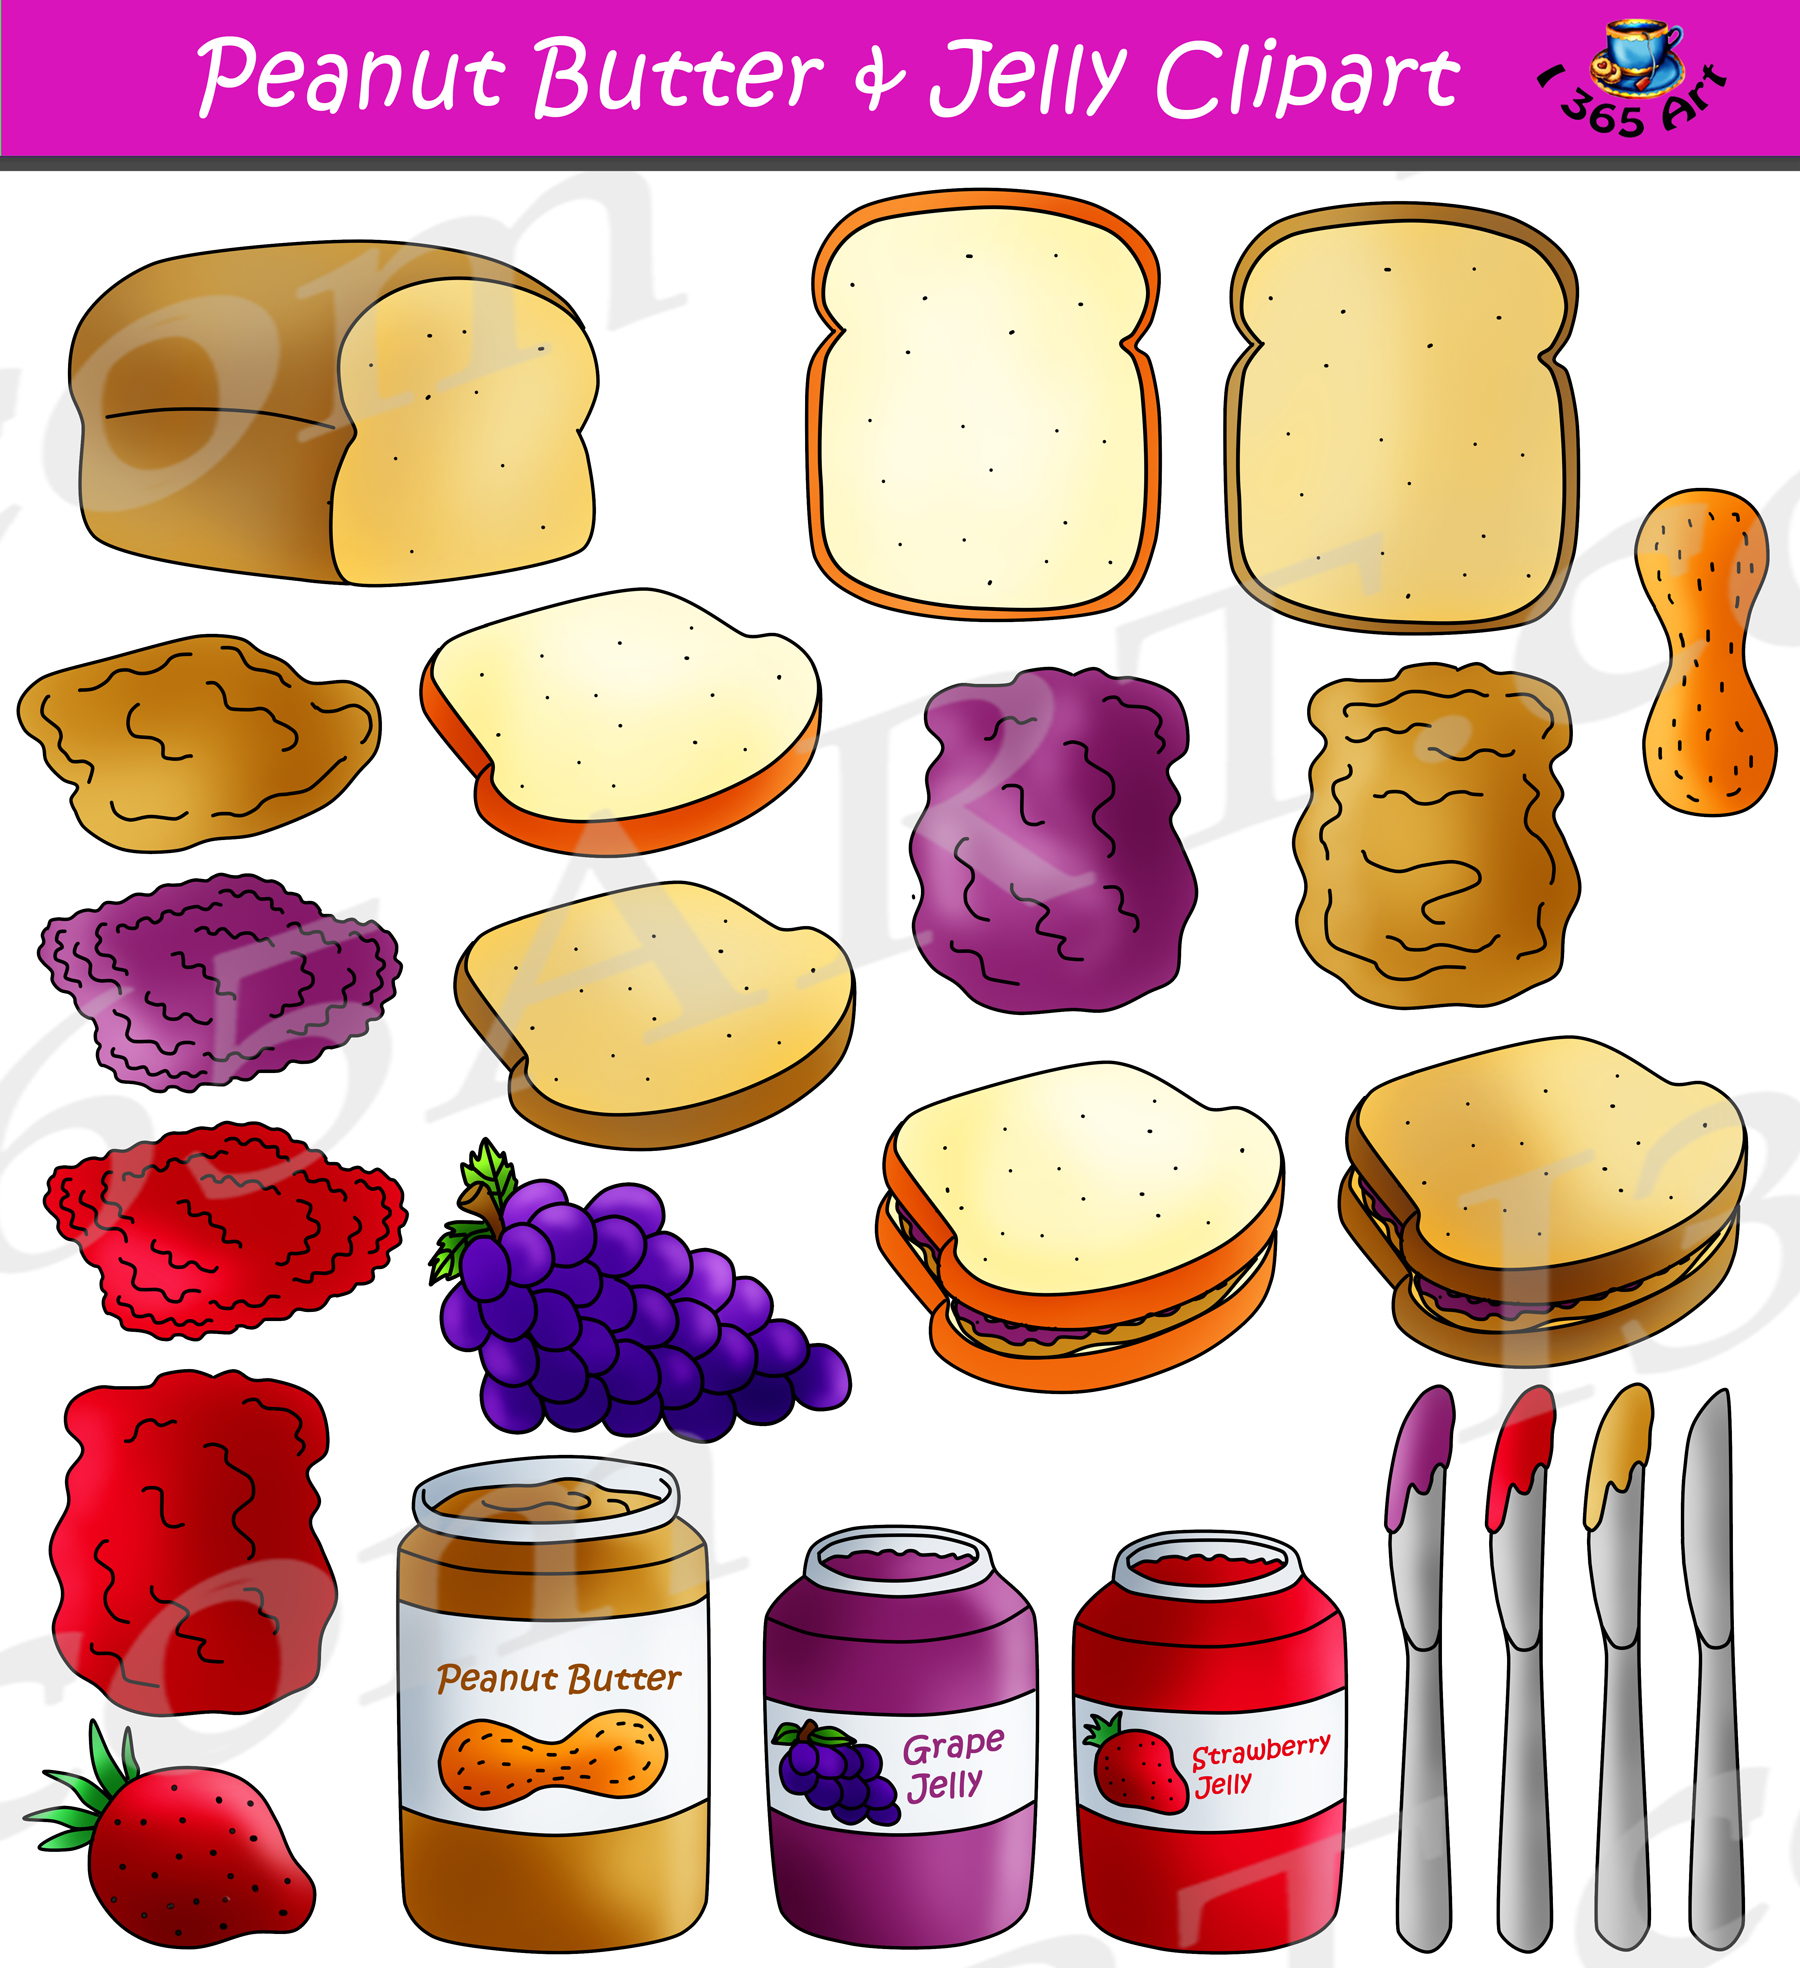 peanut butter jelly clipart maker graphics commercial download rh clipart4school com peanut butter and jelly clipart peanut butter and jelly sandwich clipart